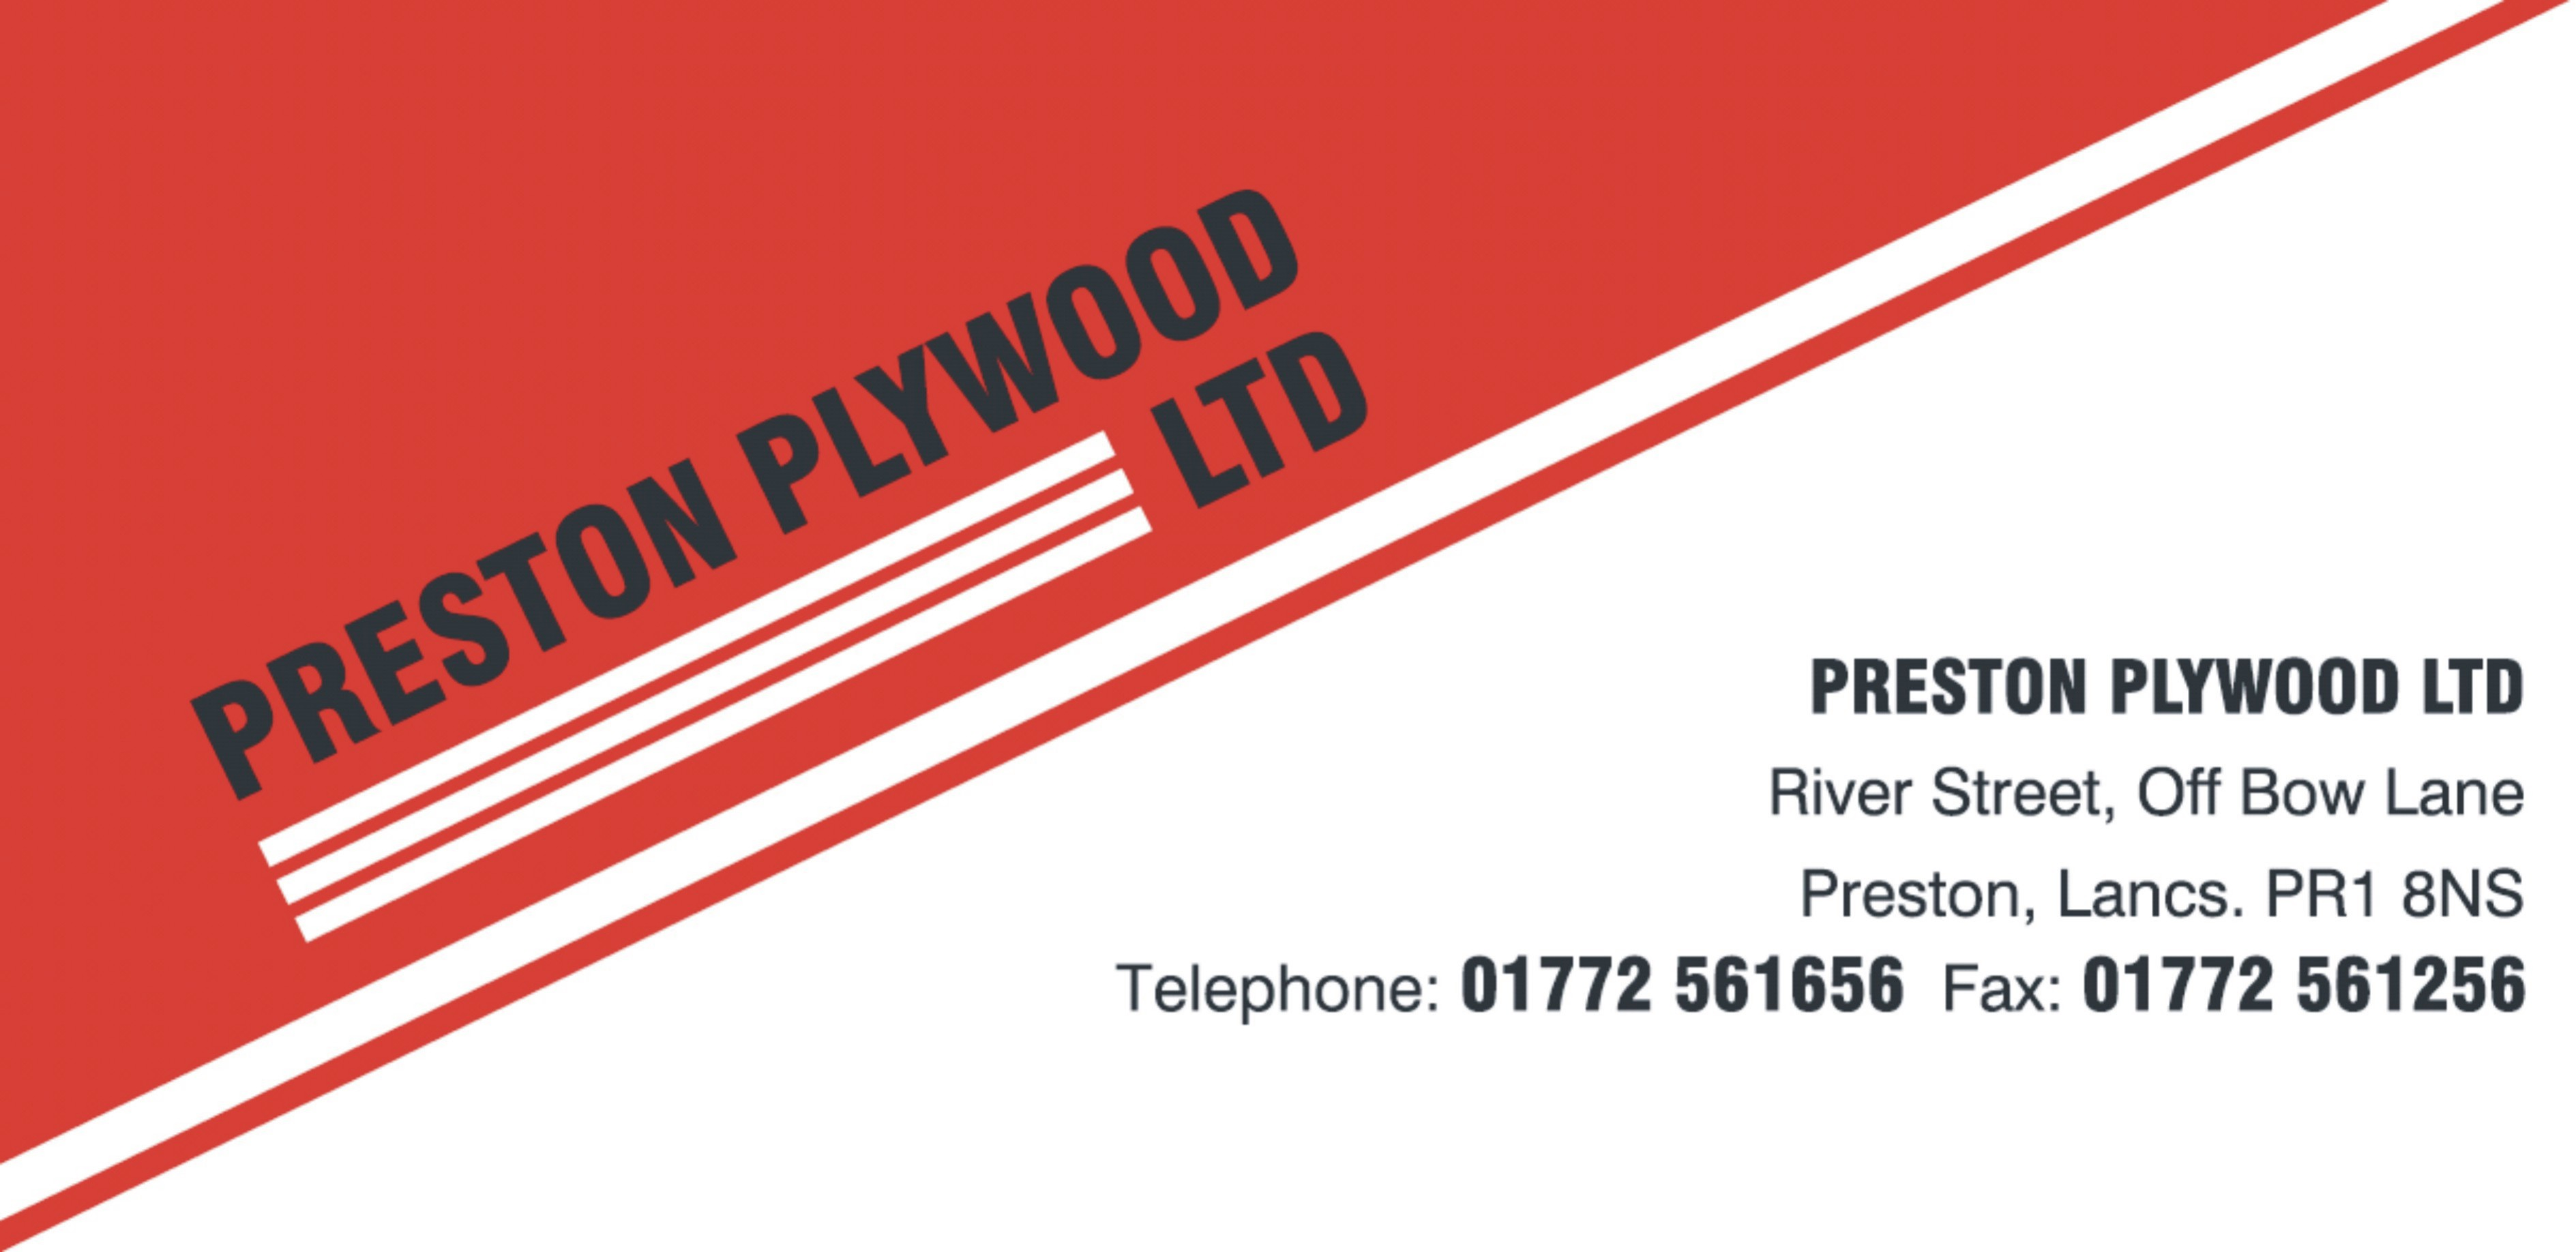 Preston Plywood Ltd